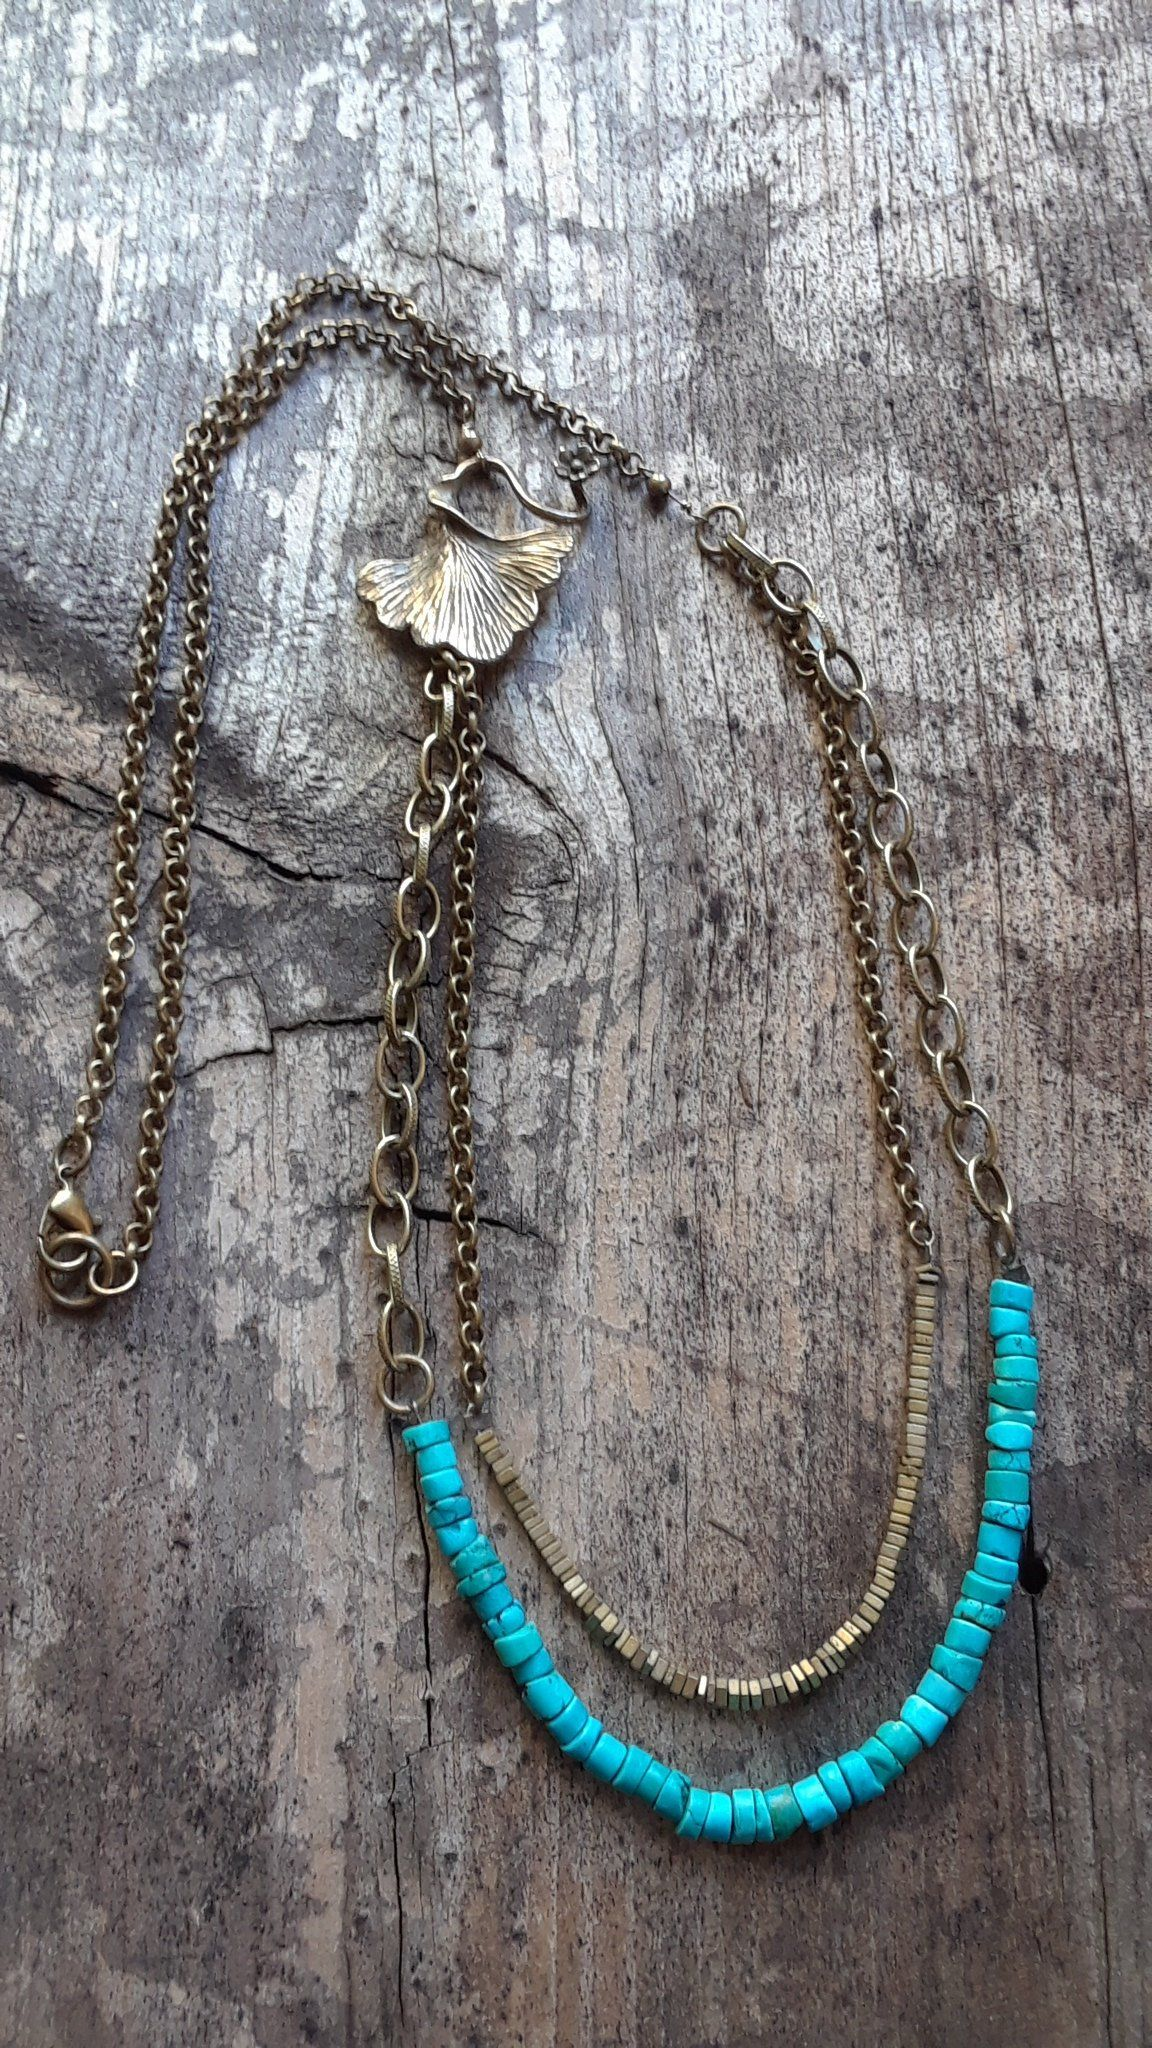 Gingko leaf layered necklace by bluebirdiedesign on etsy